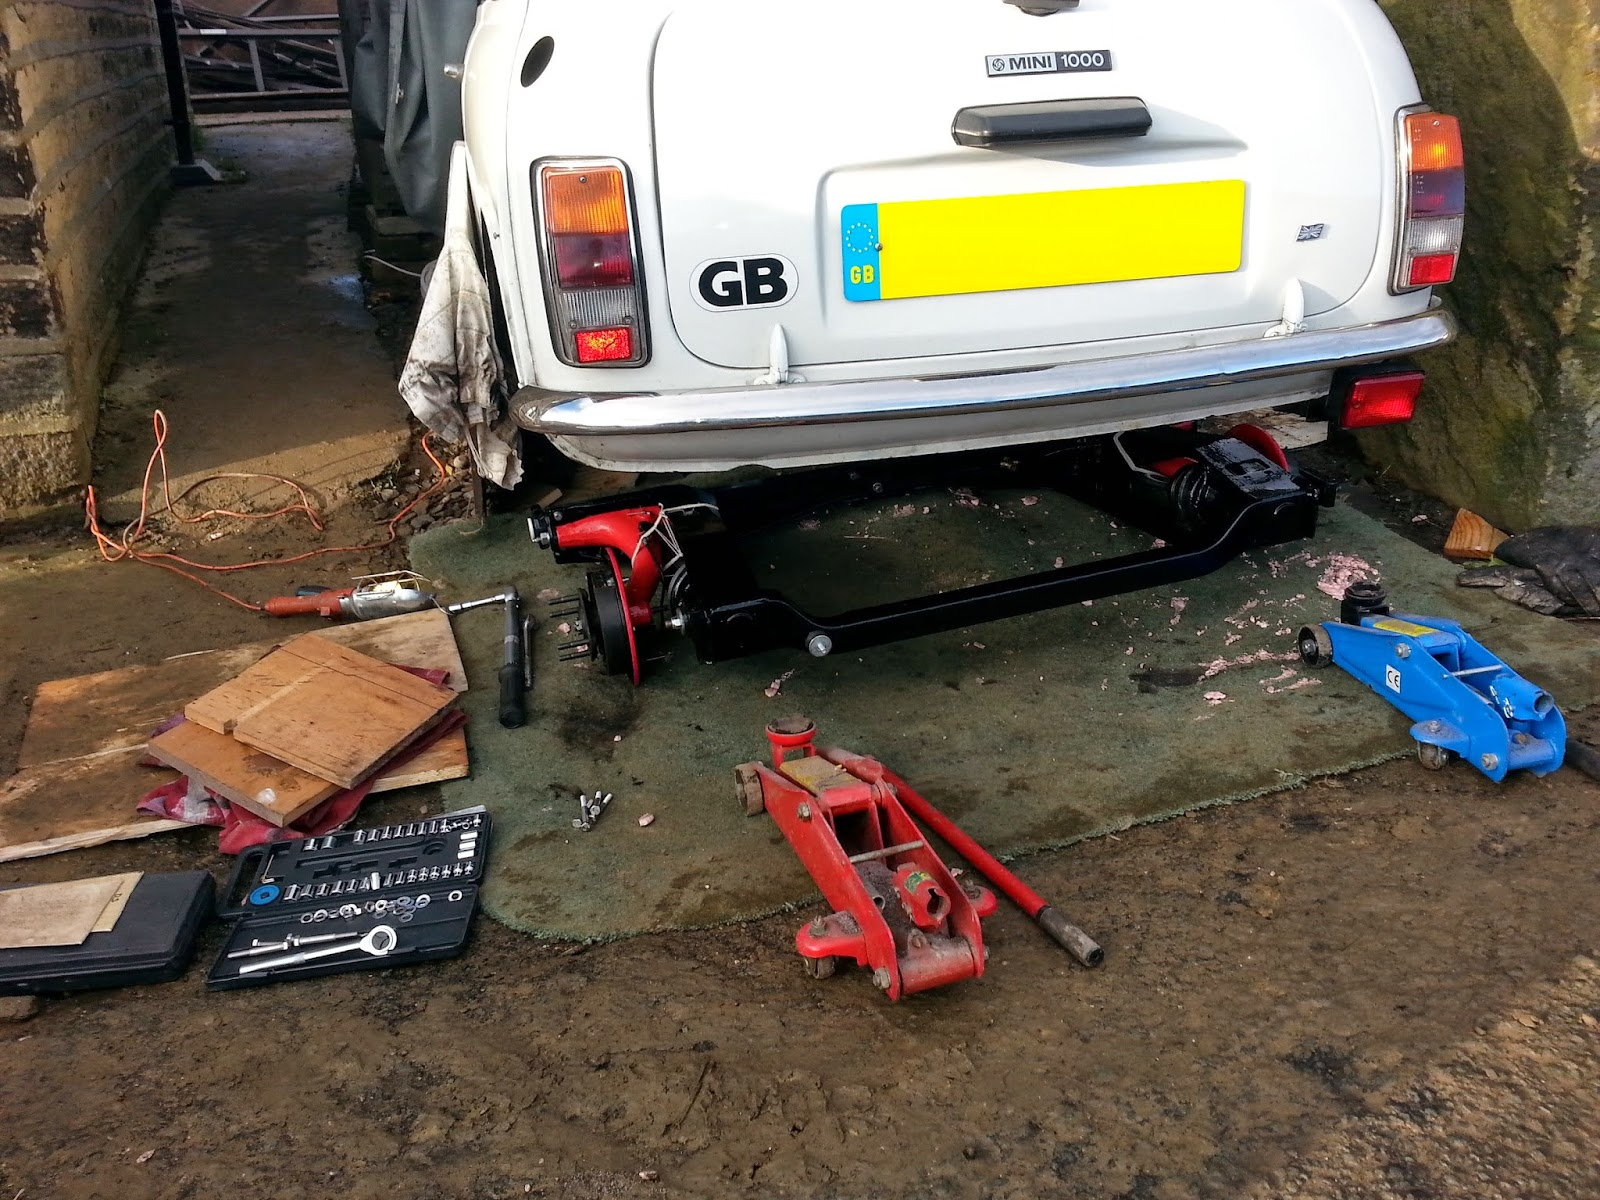 And the engine mounted to the subframe with exhaust system in place - Using Cloths Over A Small Piece Of Wood I Lifted The Subframe Onto The Jacks There Is A Balancing Point Front To Back Where The Subframe Will Sit Without